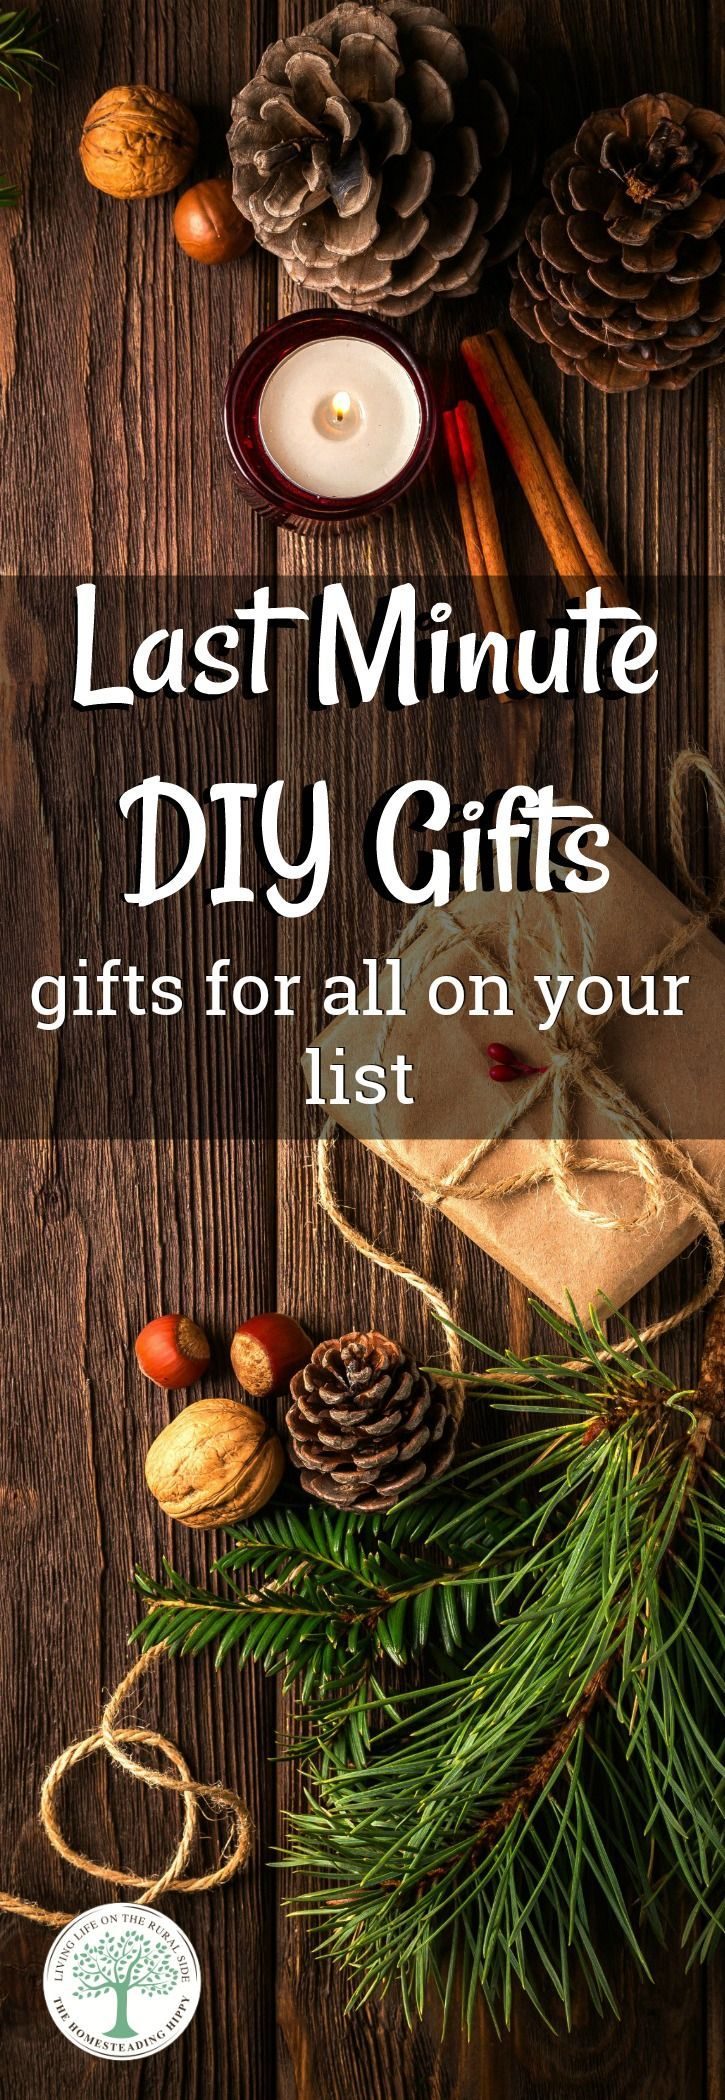 Try these easy diy projects that are perfect for anyone on your list! They make great last minute birthday gift ideas or for any other occasion. The Homesteading Hippy via @homesteadhippy